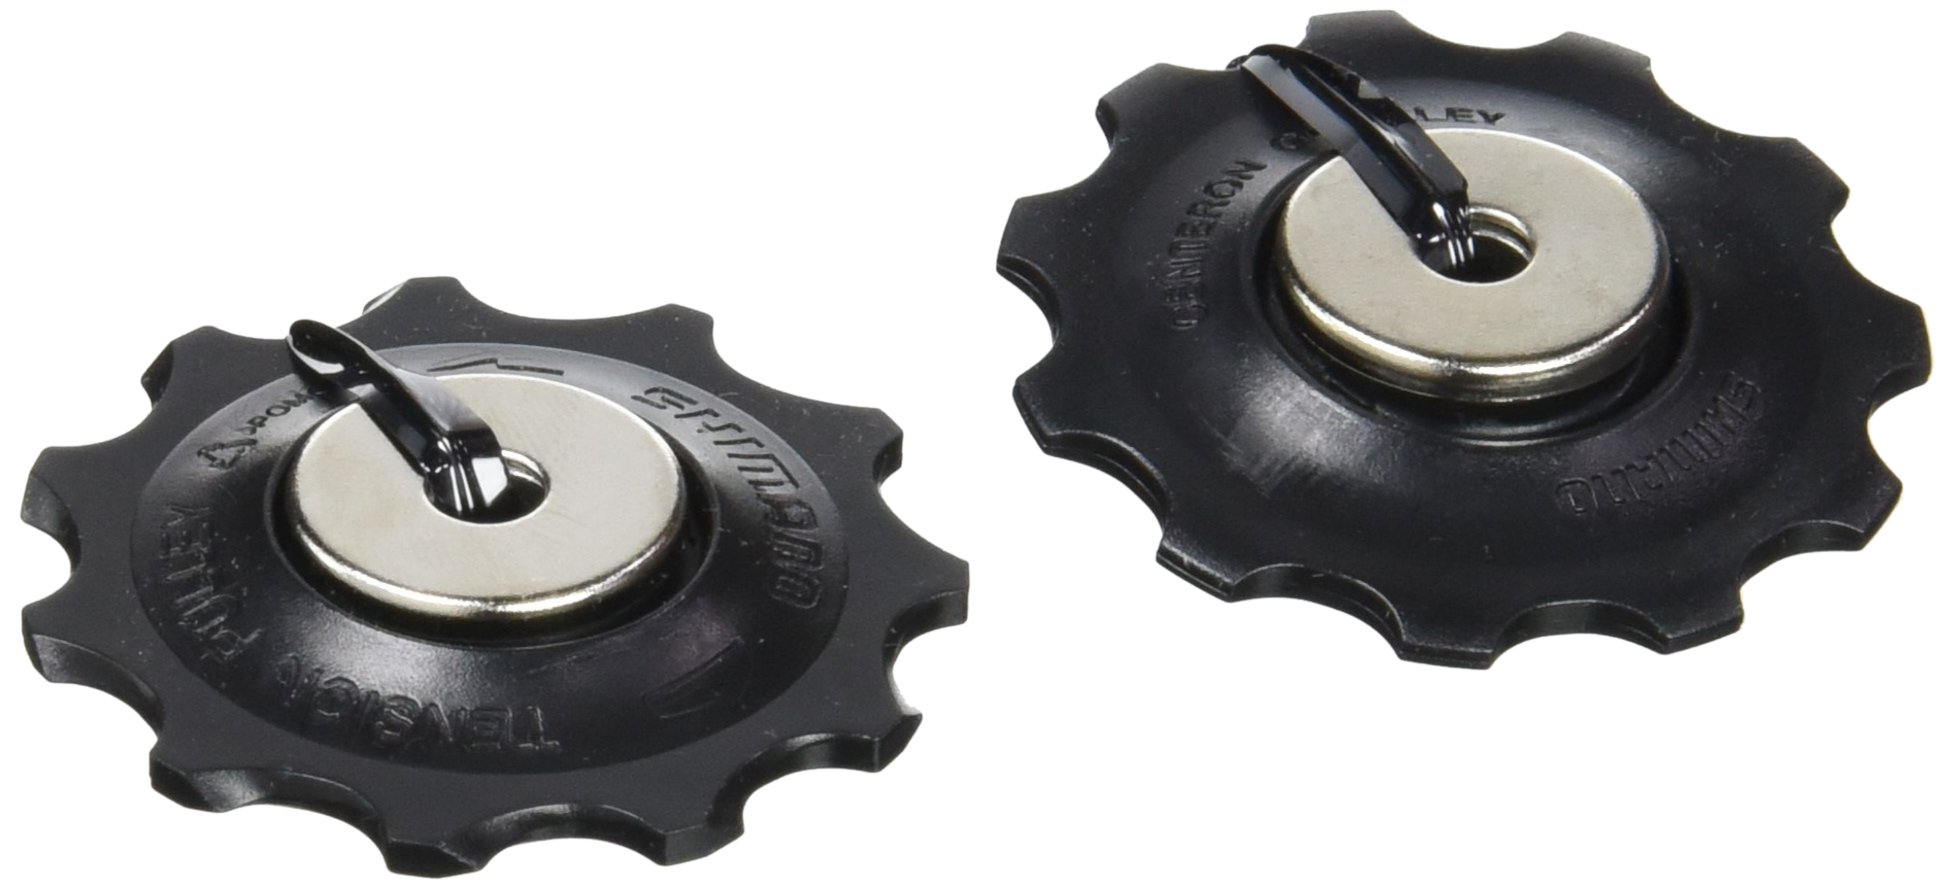 Best Rated In Front Bike Derailleurs Helpful Customer Reviews Rear Derailleur Diagram Shimano Dura Ace Pulley Assembly Pair Product Image